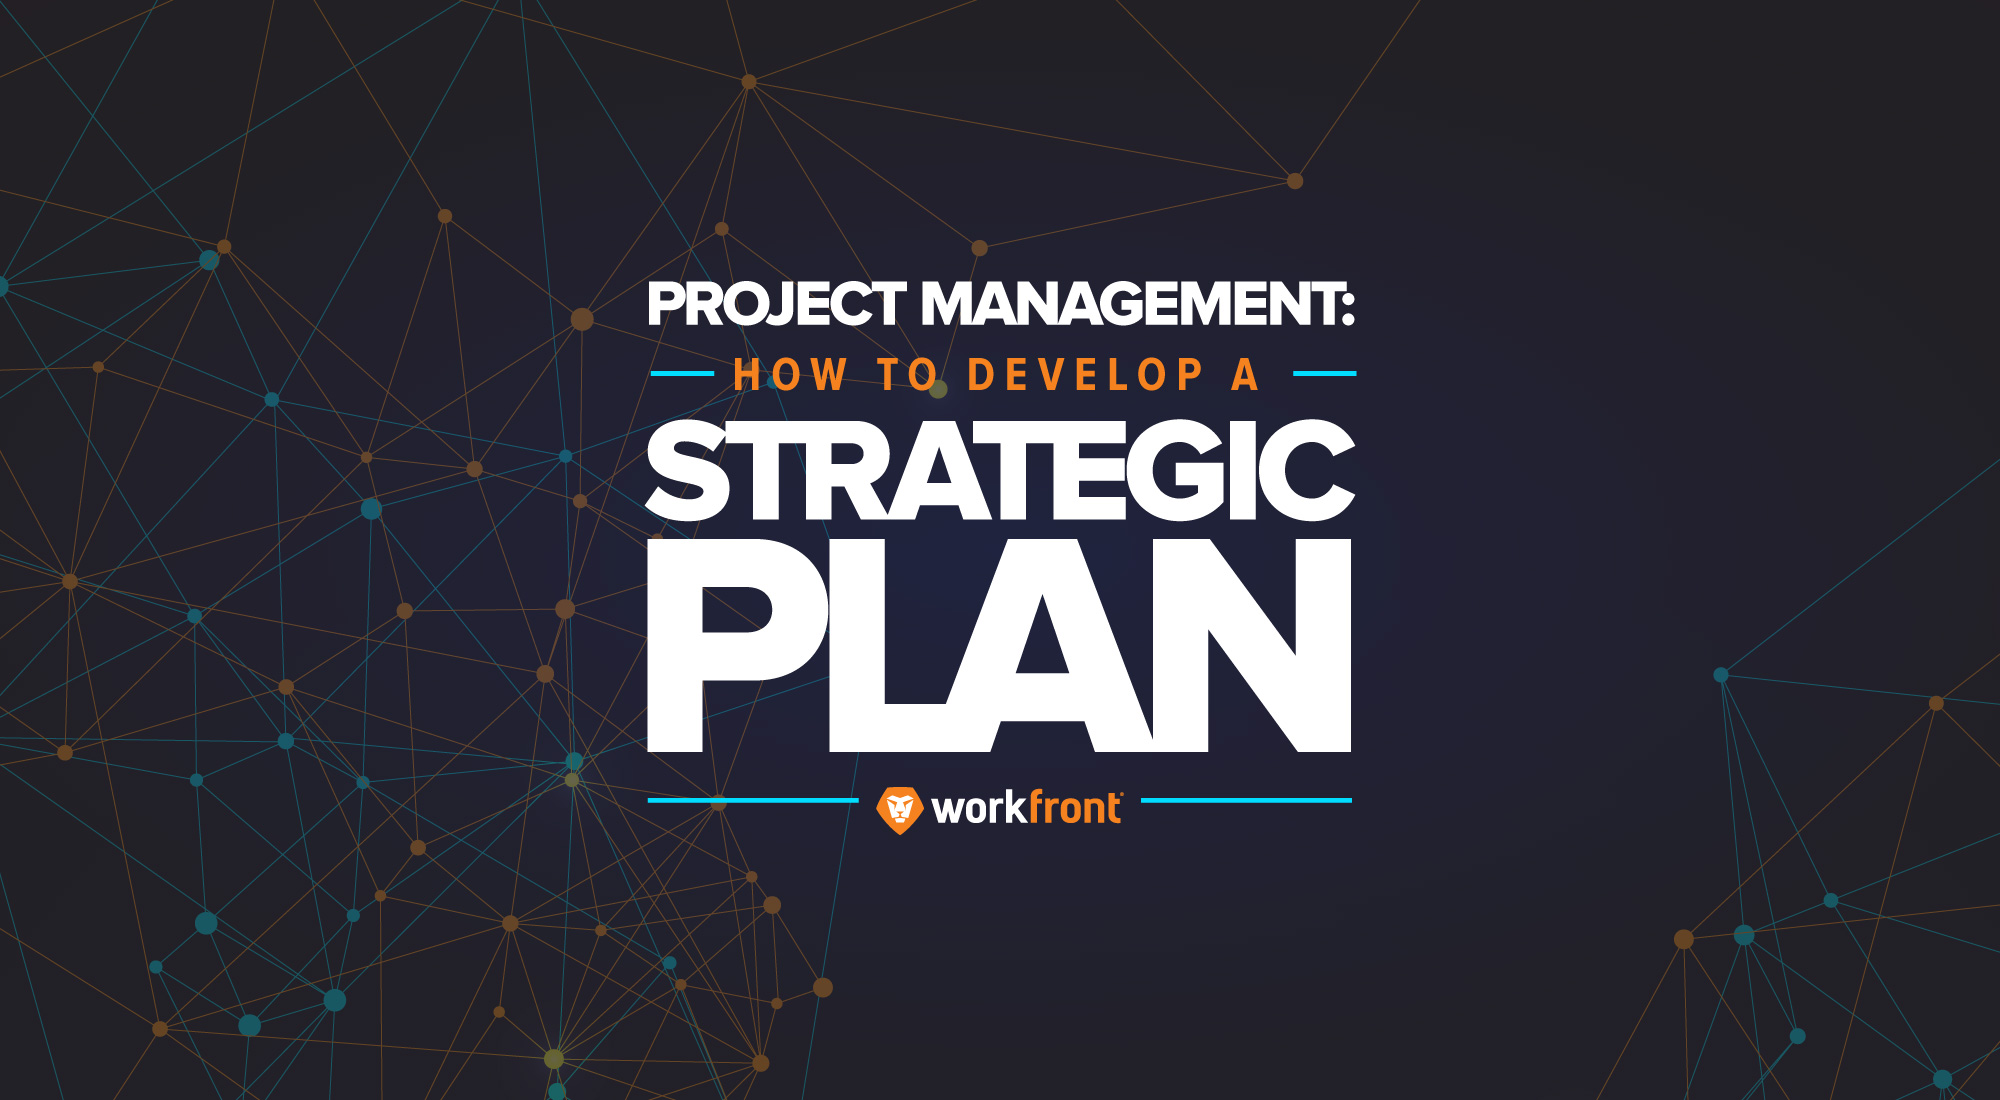 Project Management: How to Develop a Strategic Plan | Workfront